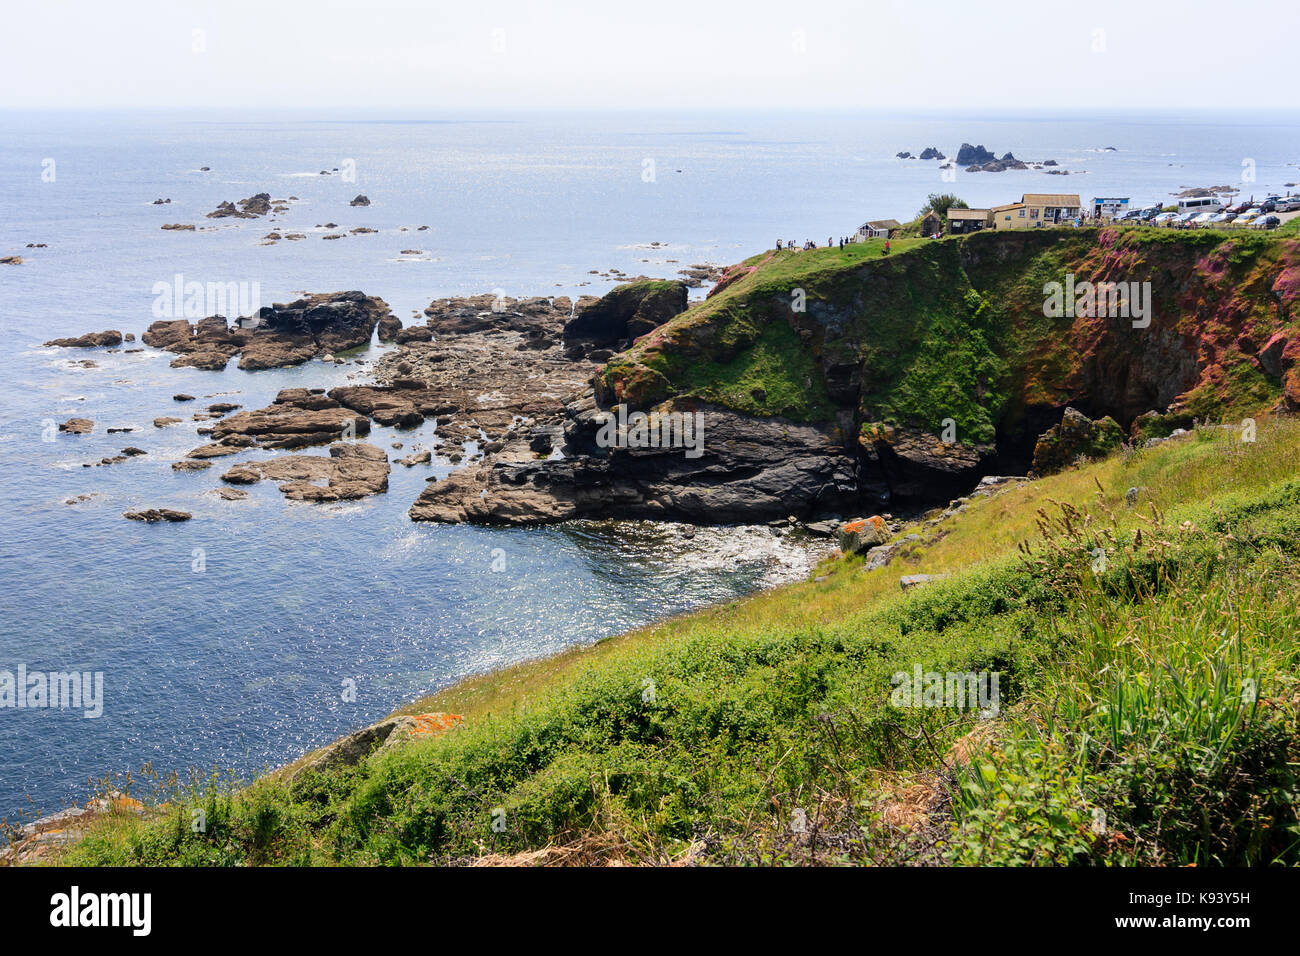 The headland of the The Lizard Point, Cornwall, mainland UK's most southerly point - Stock Image